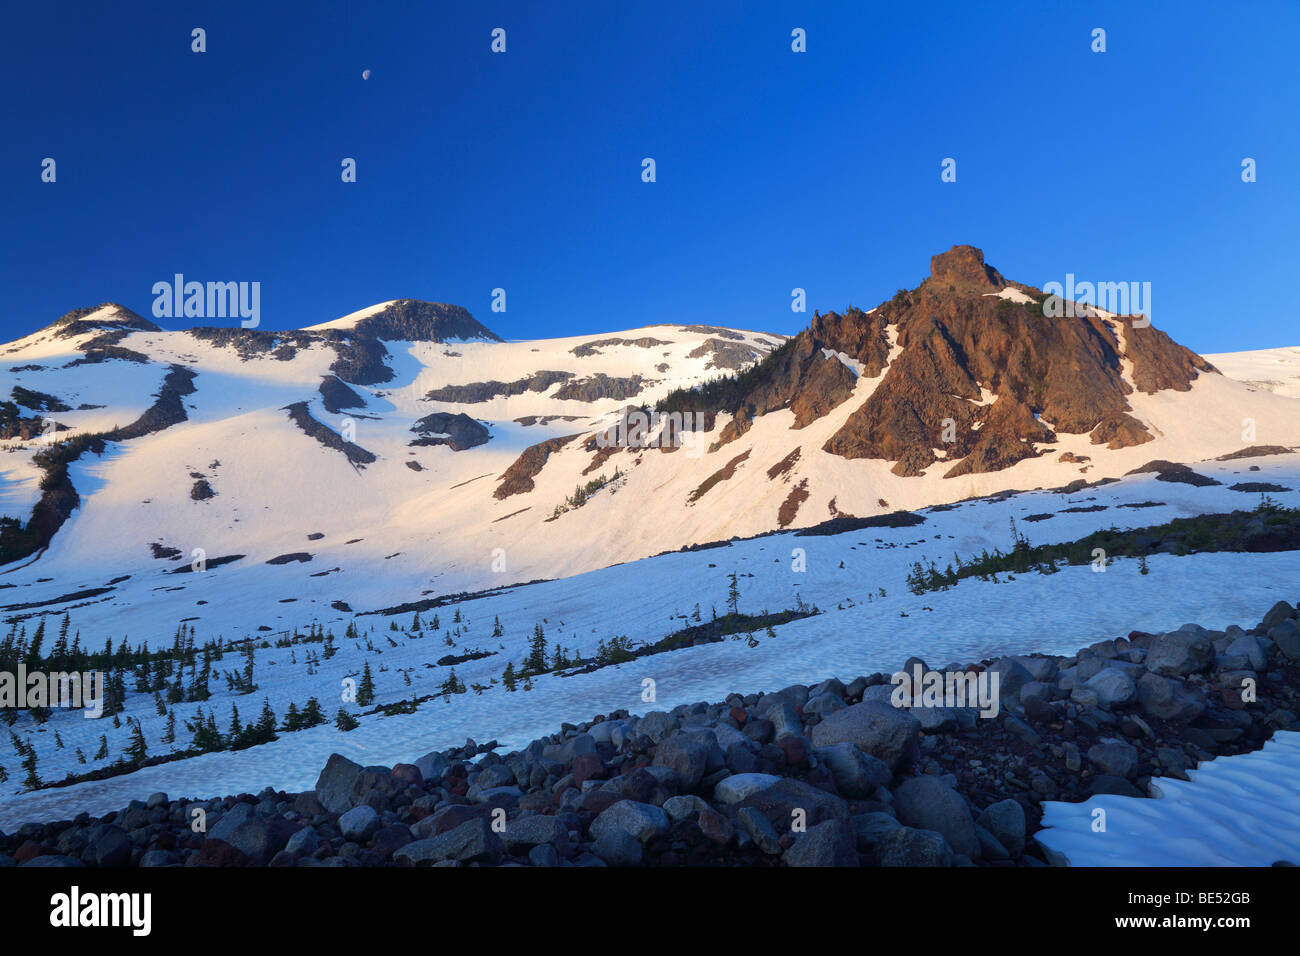 Mount Rainier National Park wilderness near Panhandle Gap along the Wonderland trail in winter - Stock Image